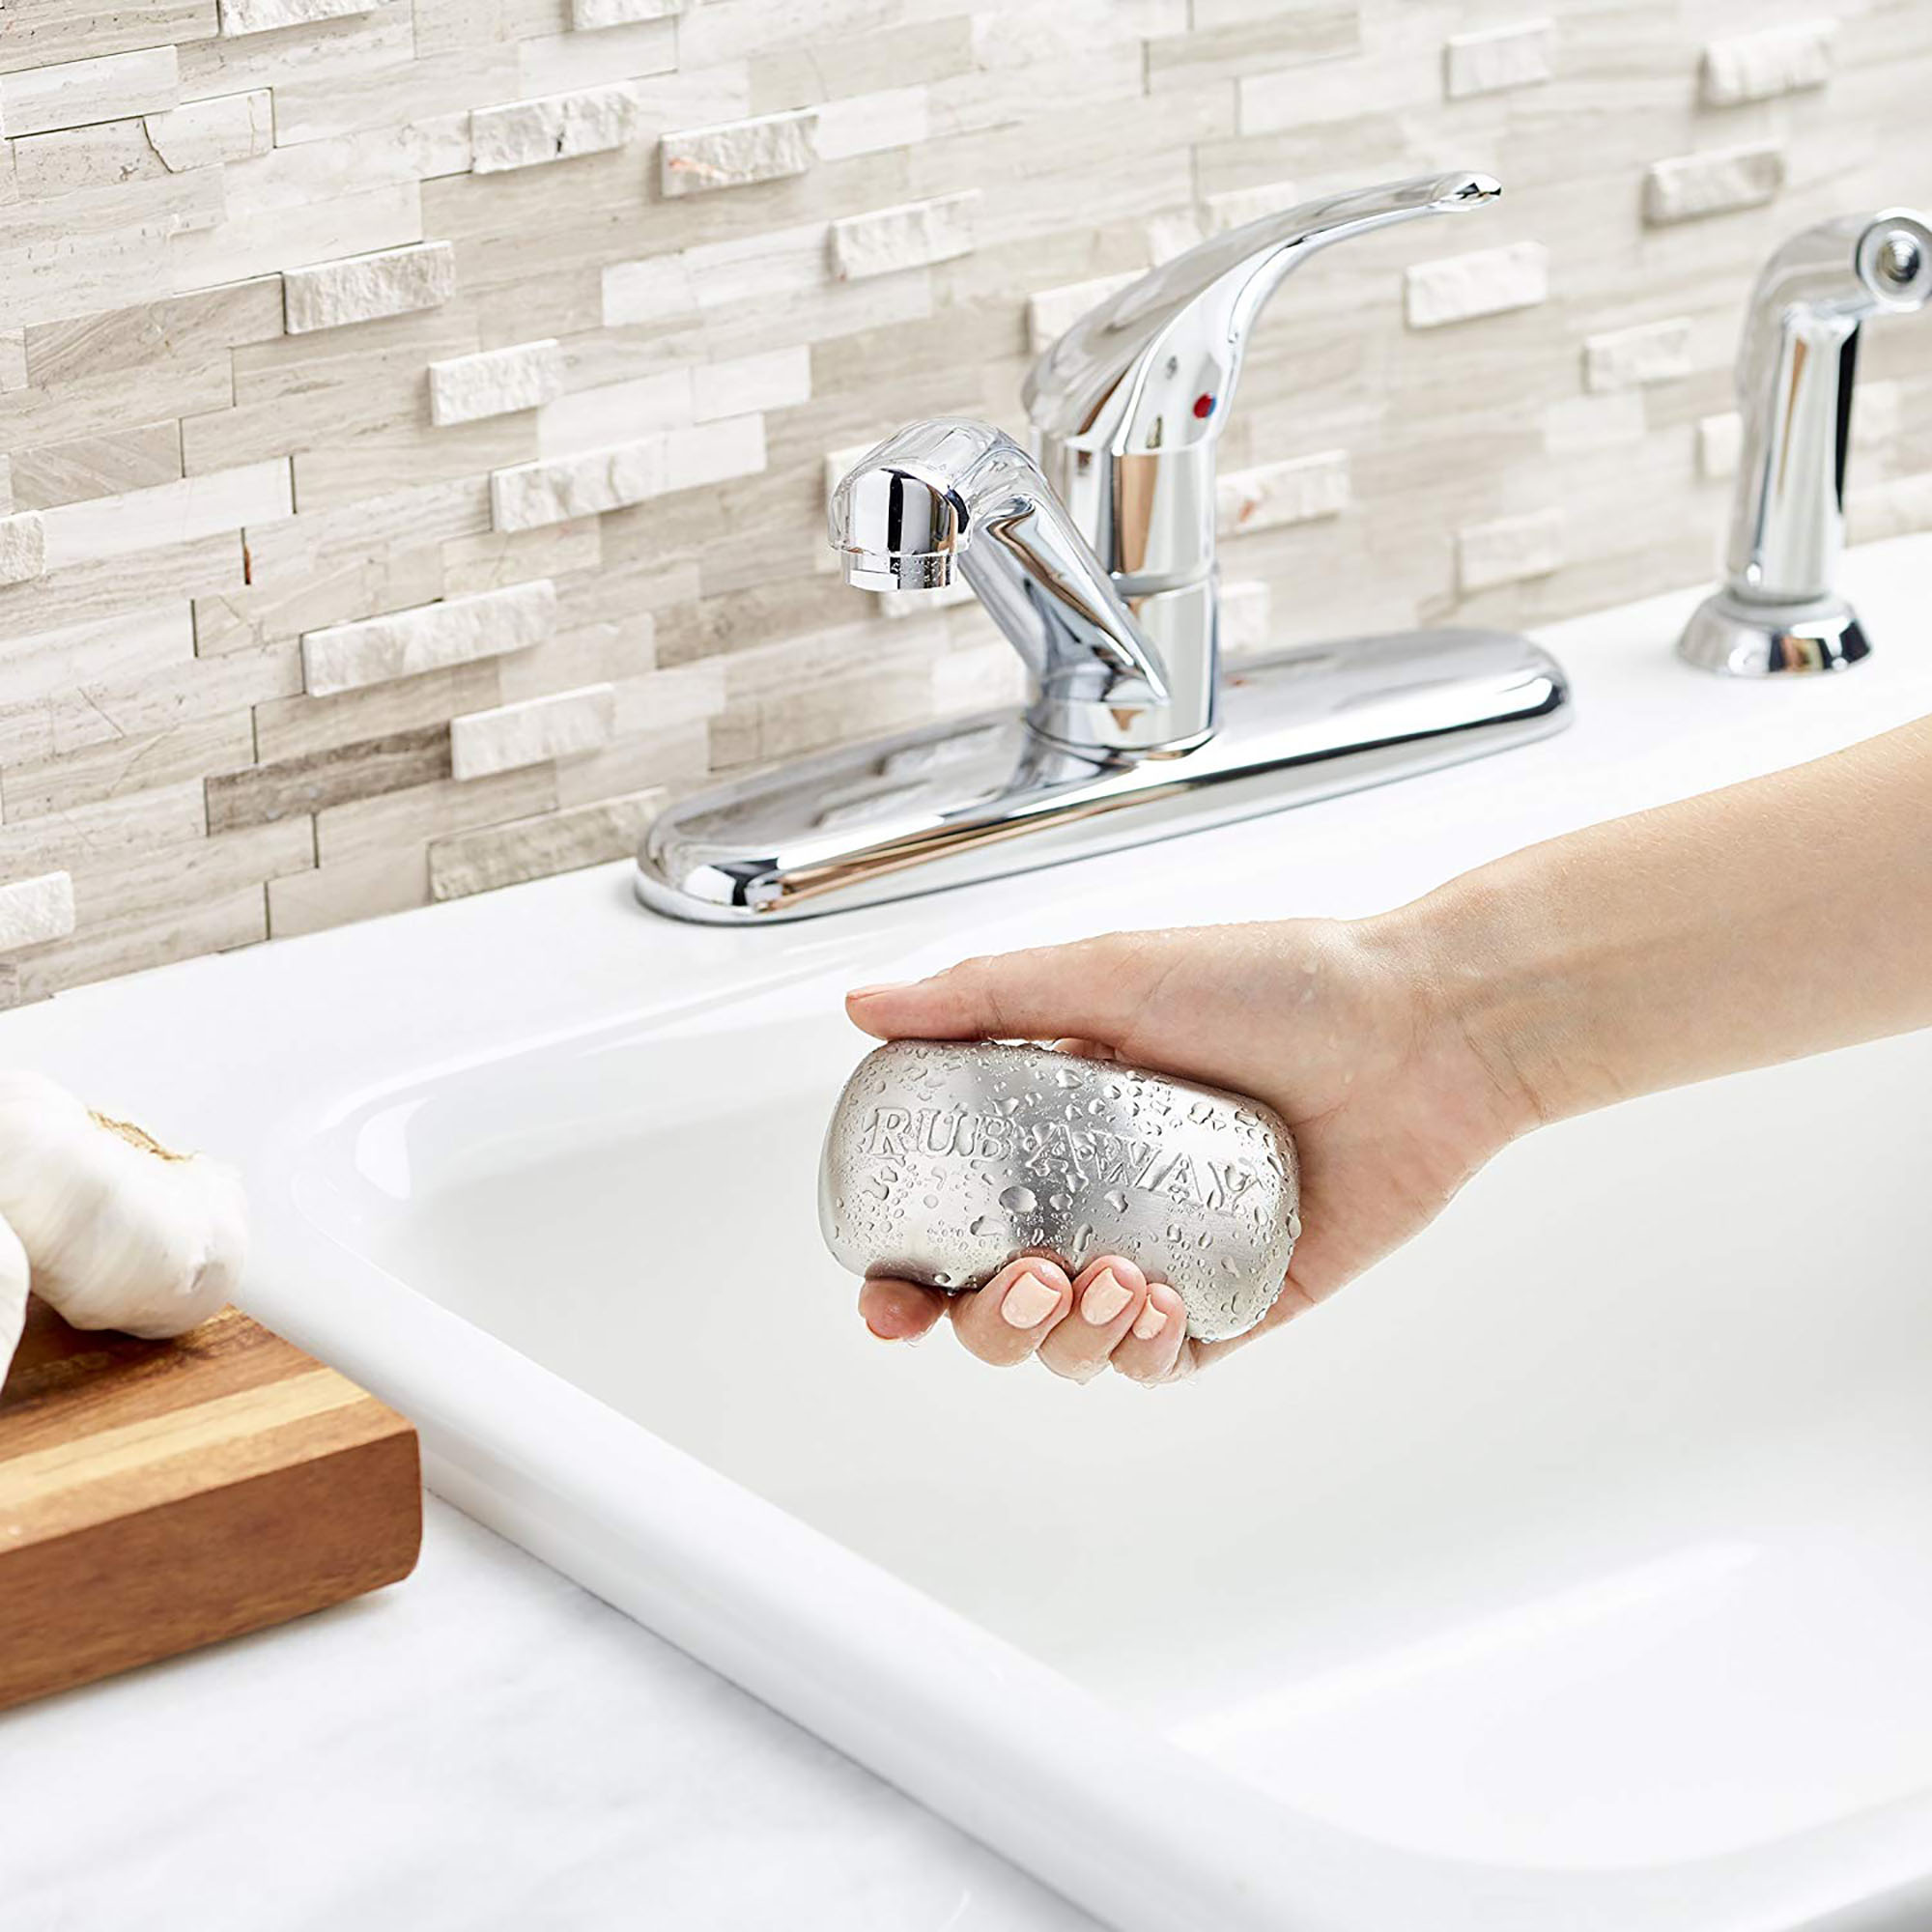 Amco Rub-a-Way Bar Stainless Steel Odor Absorber Review